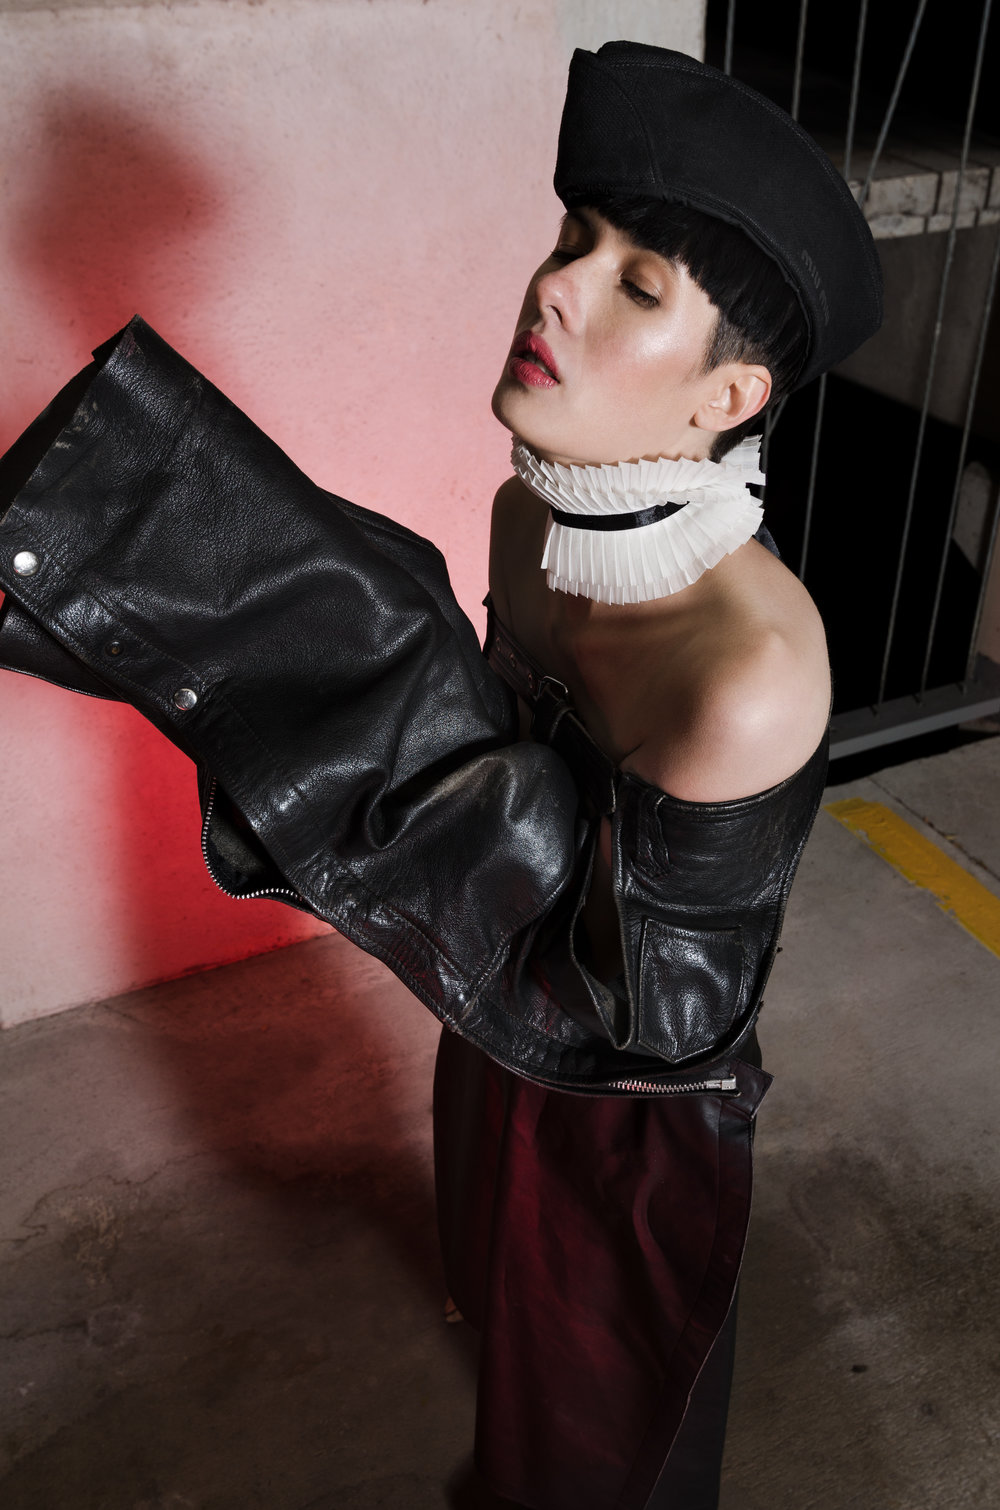 OFF WITH THEIR HEADS! - OPALUS MAGAZINE